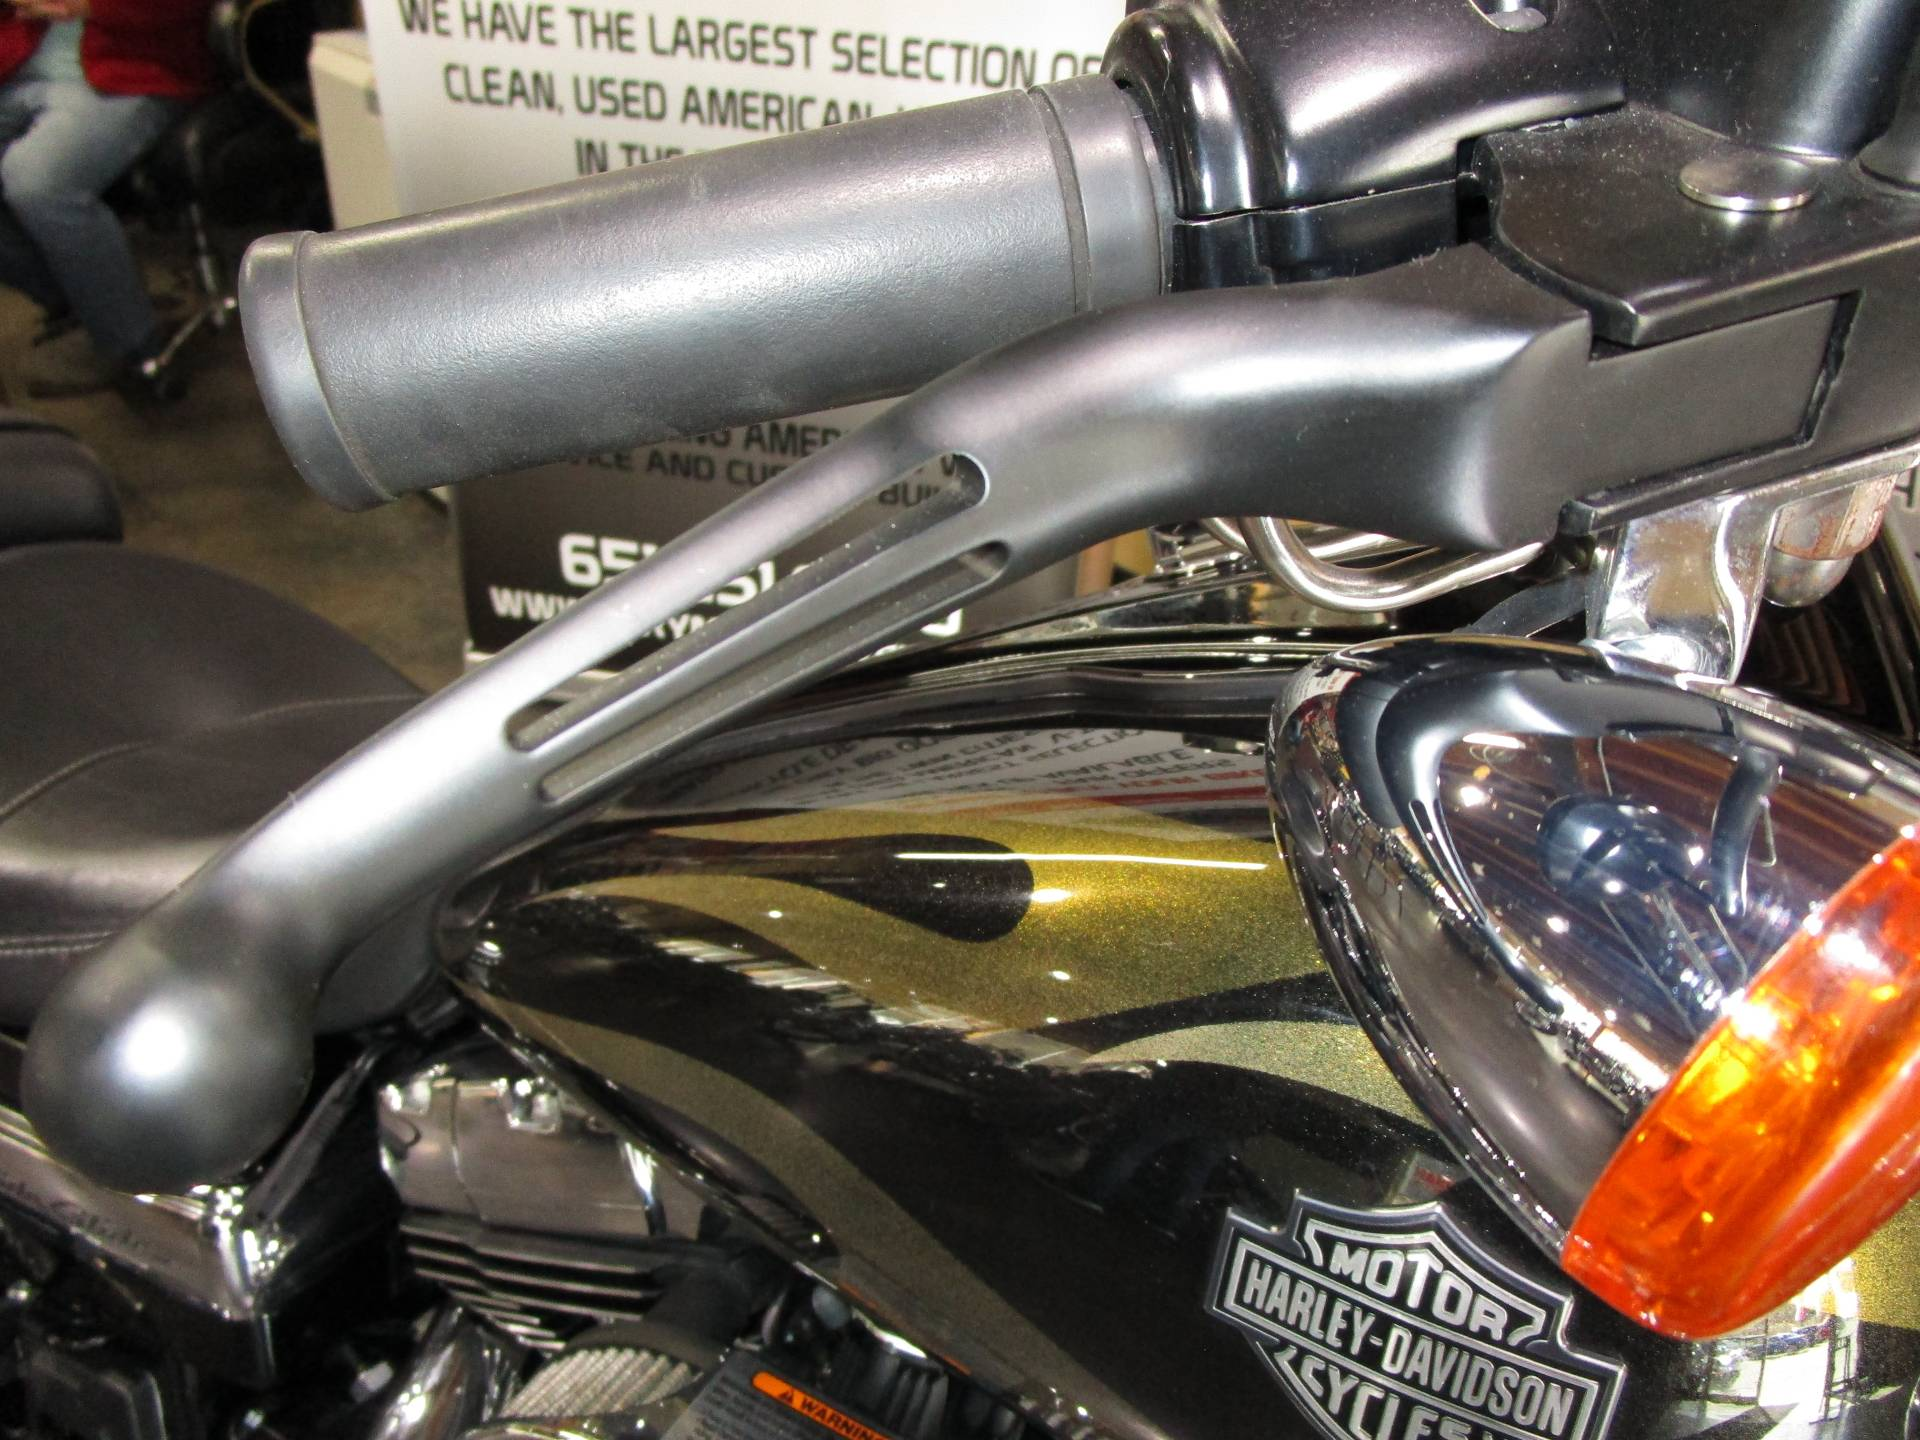 2017 Harley-Davidson Wide Glide in South Saint Paul, Minnesota - Photo 6